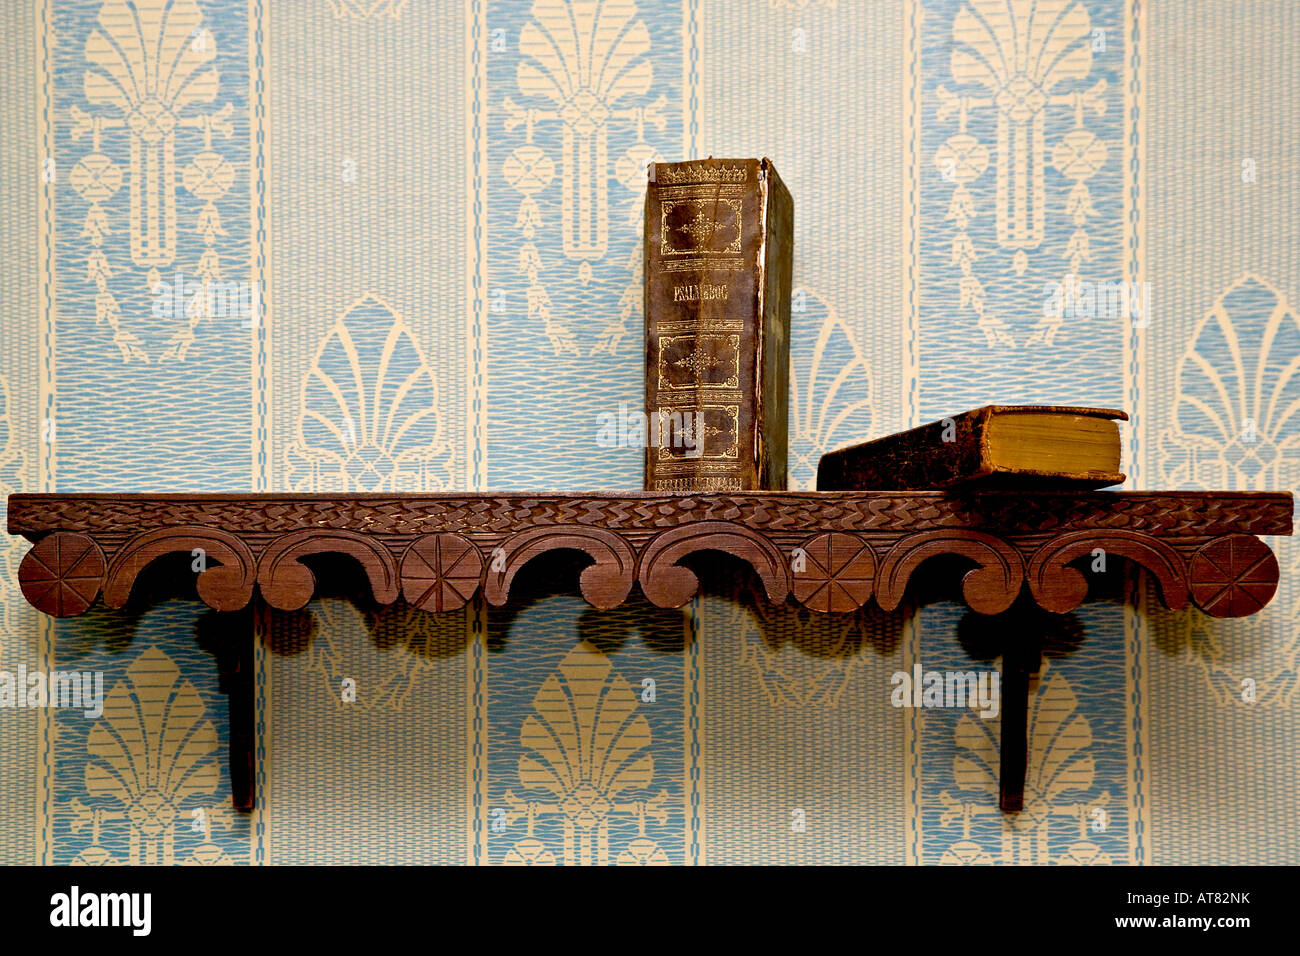 Altes Bücherregal Altes Bücherregal Stockfoto Bild 16232862 Alamy